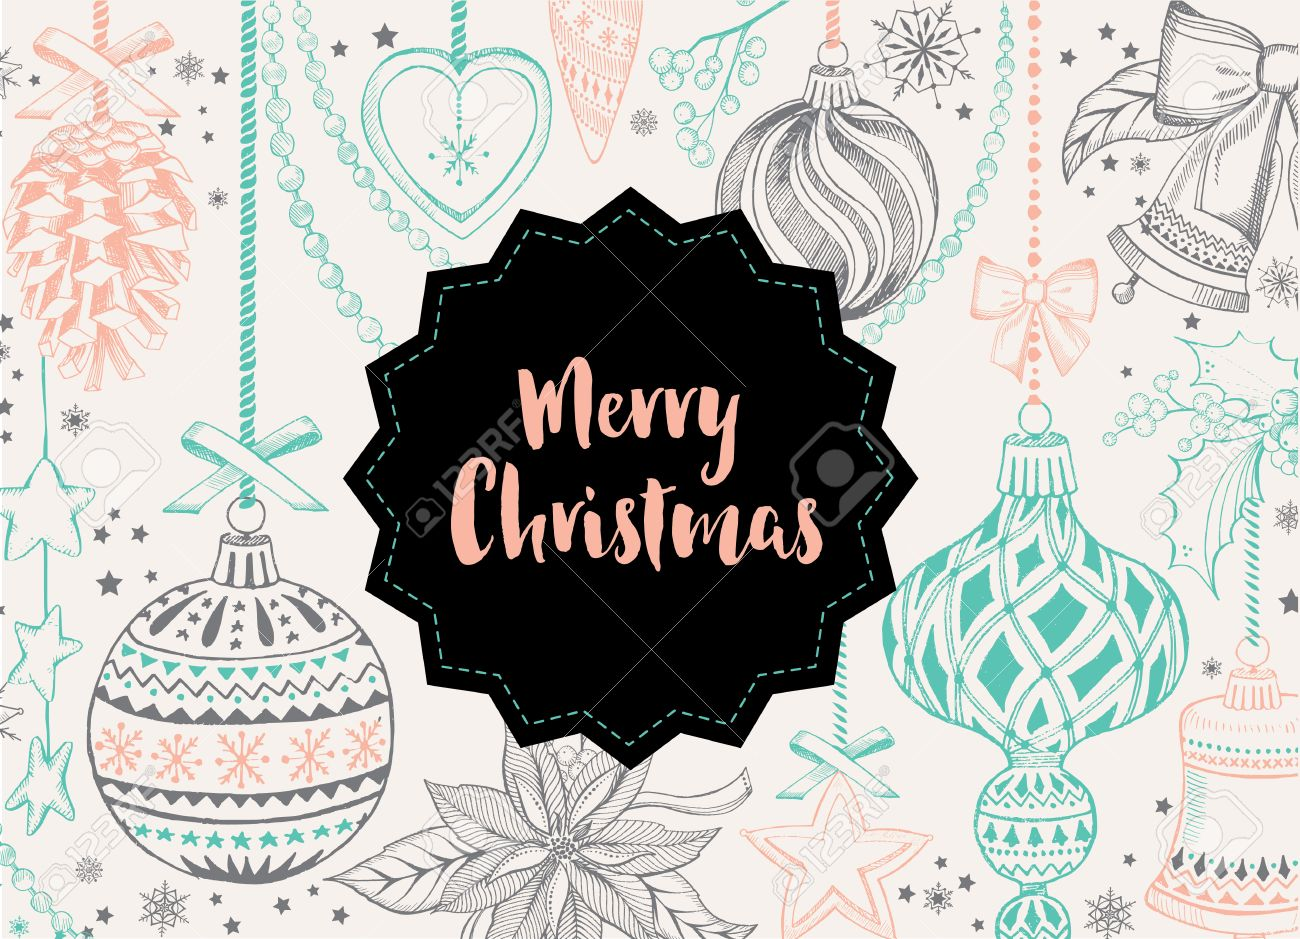 Free christmas poster design templates - Xmas Logo Vector Merry Christmas Poster Design Vector Holiday Template With Xmas Hand